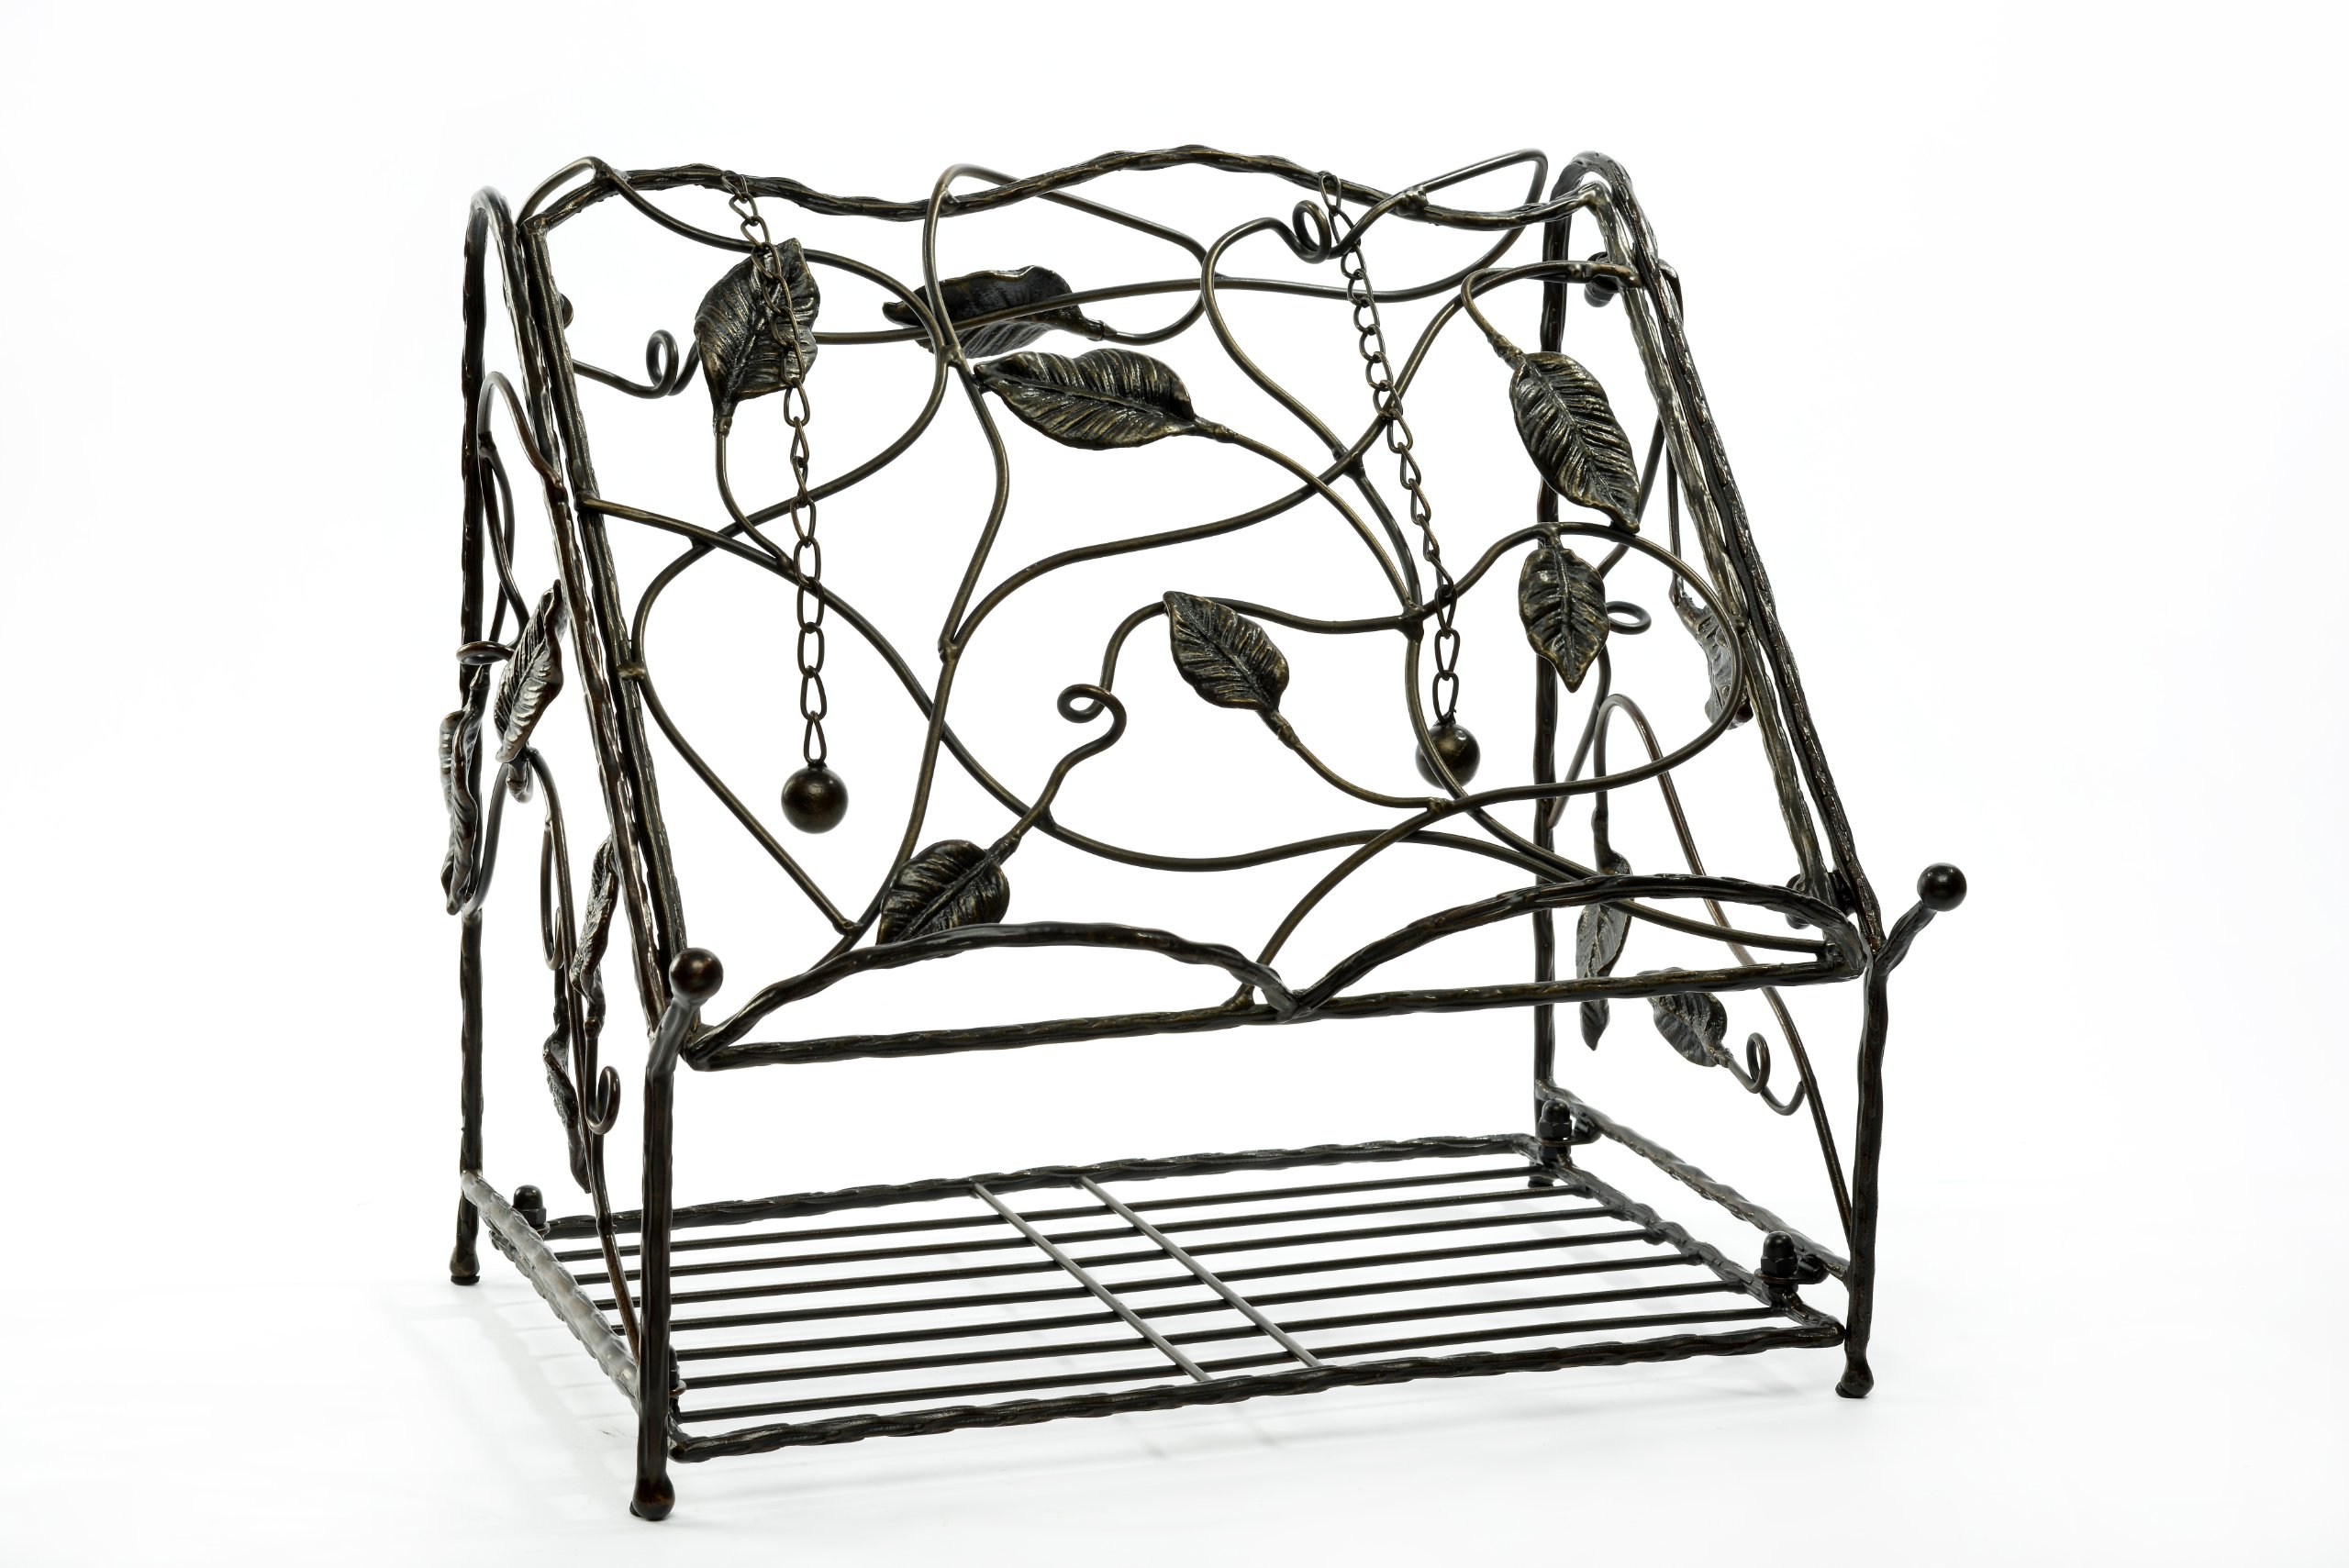 Caffco International Biltmore Inspirations Collection Arbor Metal Vine Cookbook Stand by Caffco International